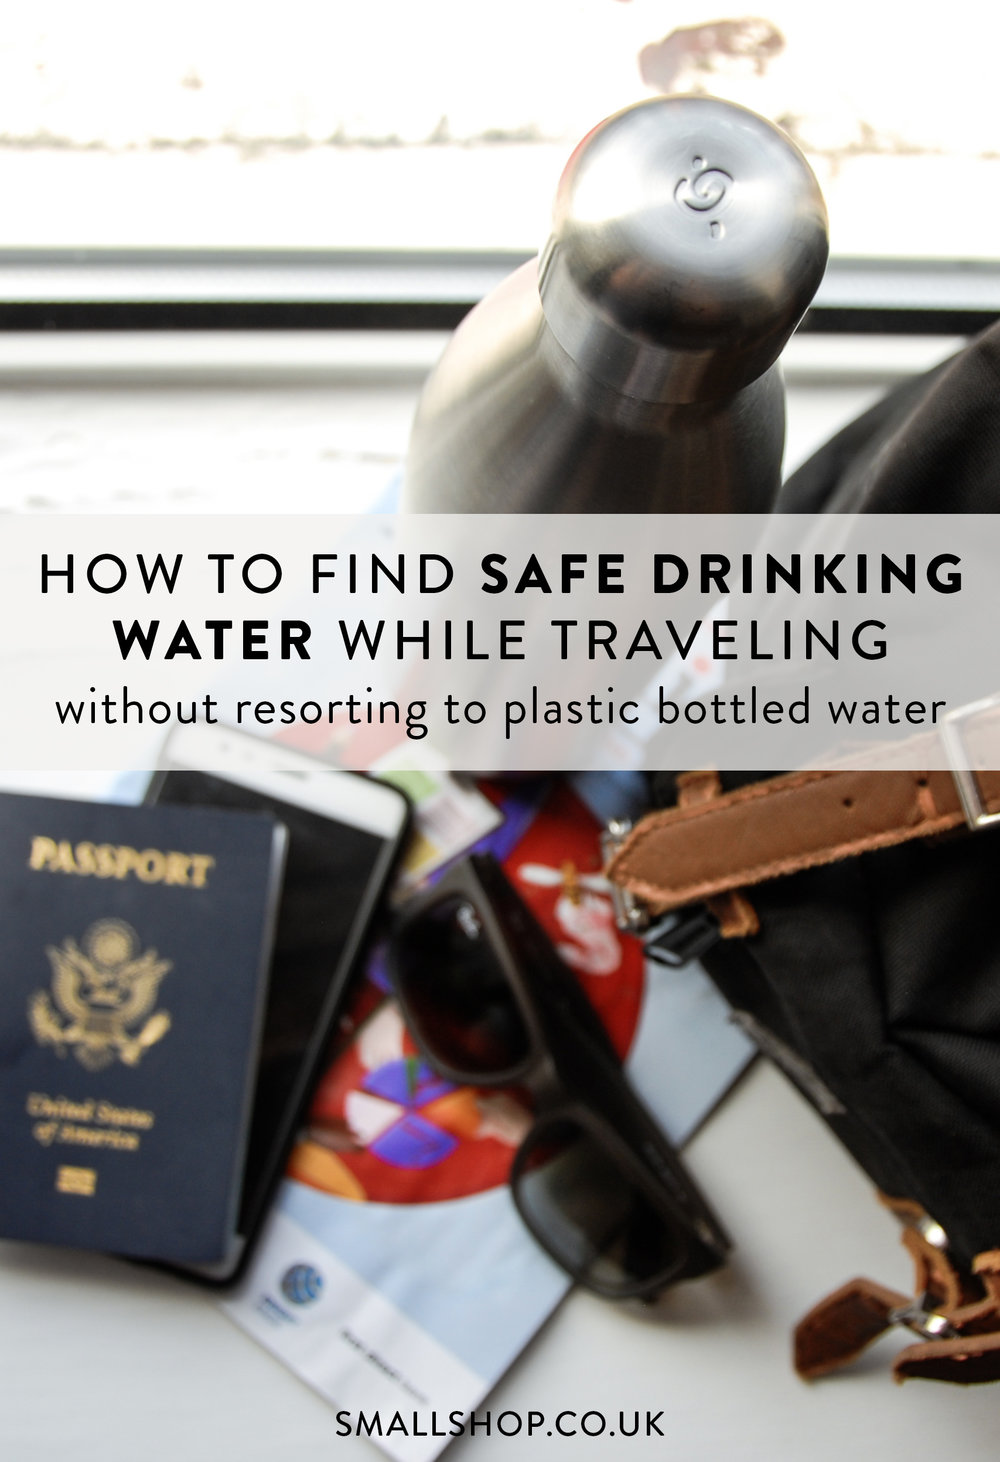 How to find safe drinking water while traveling without resorting to plastic bottled water